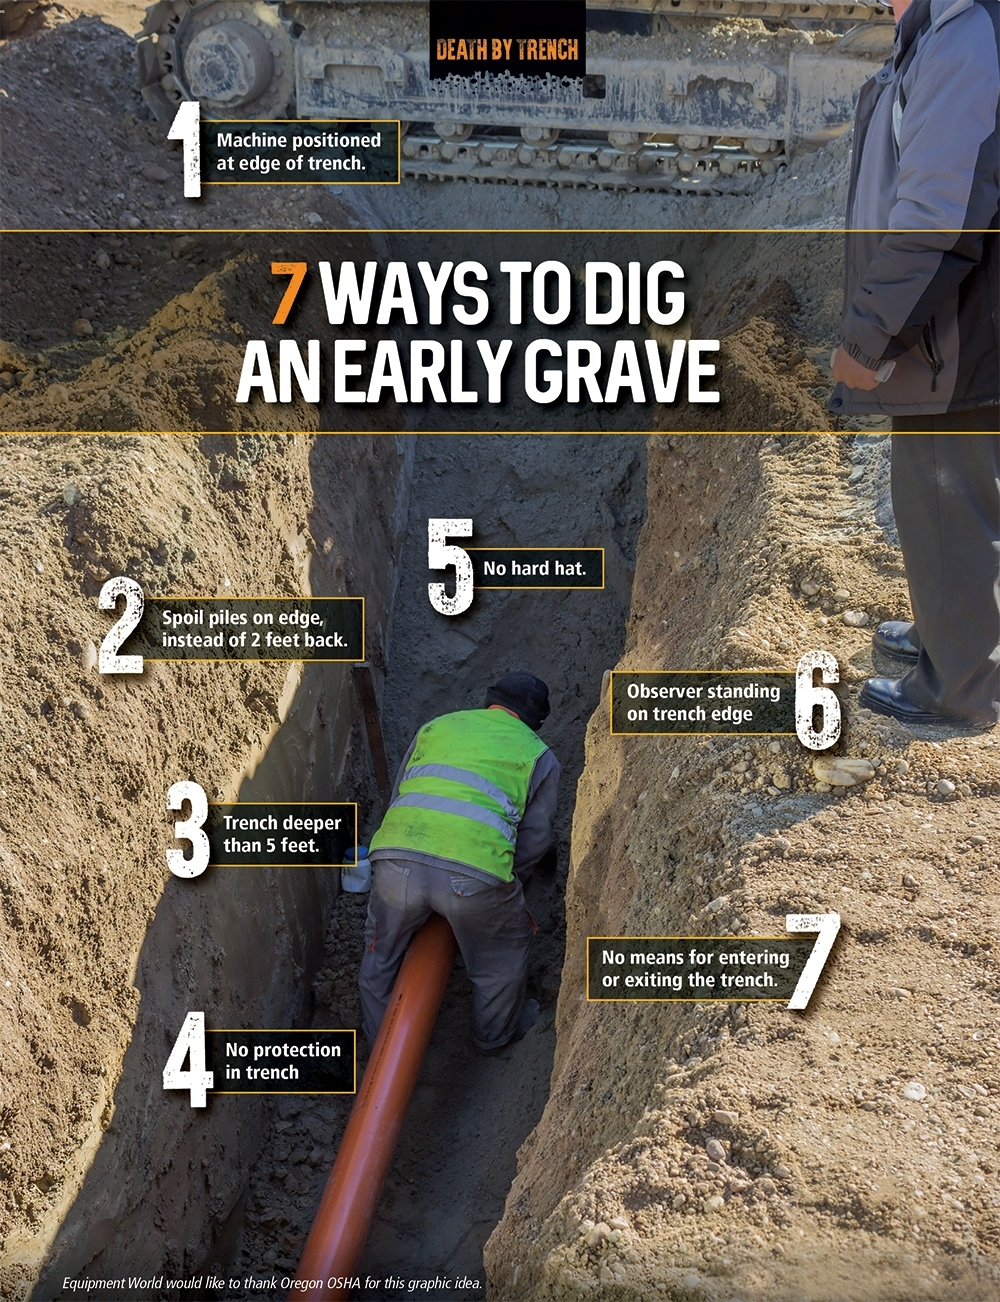 7 ways to dig an early grave